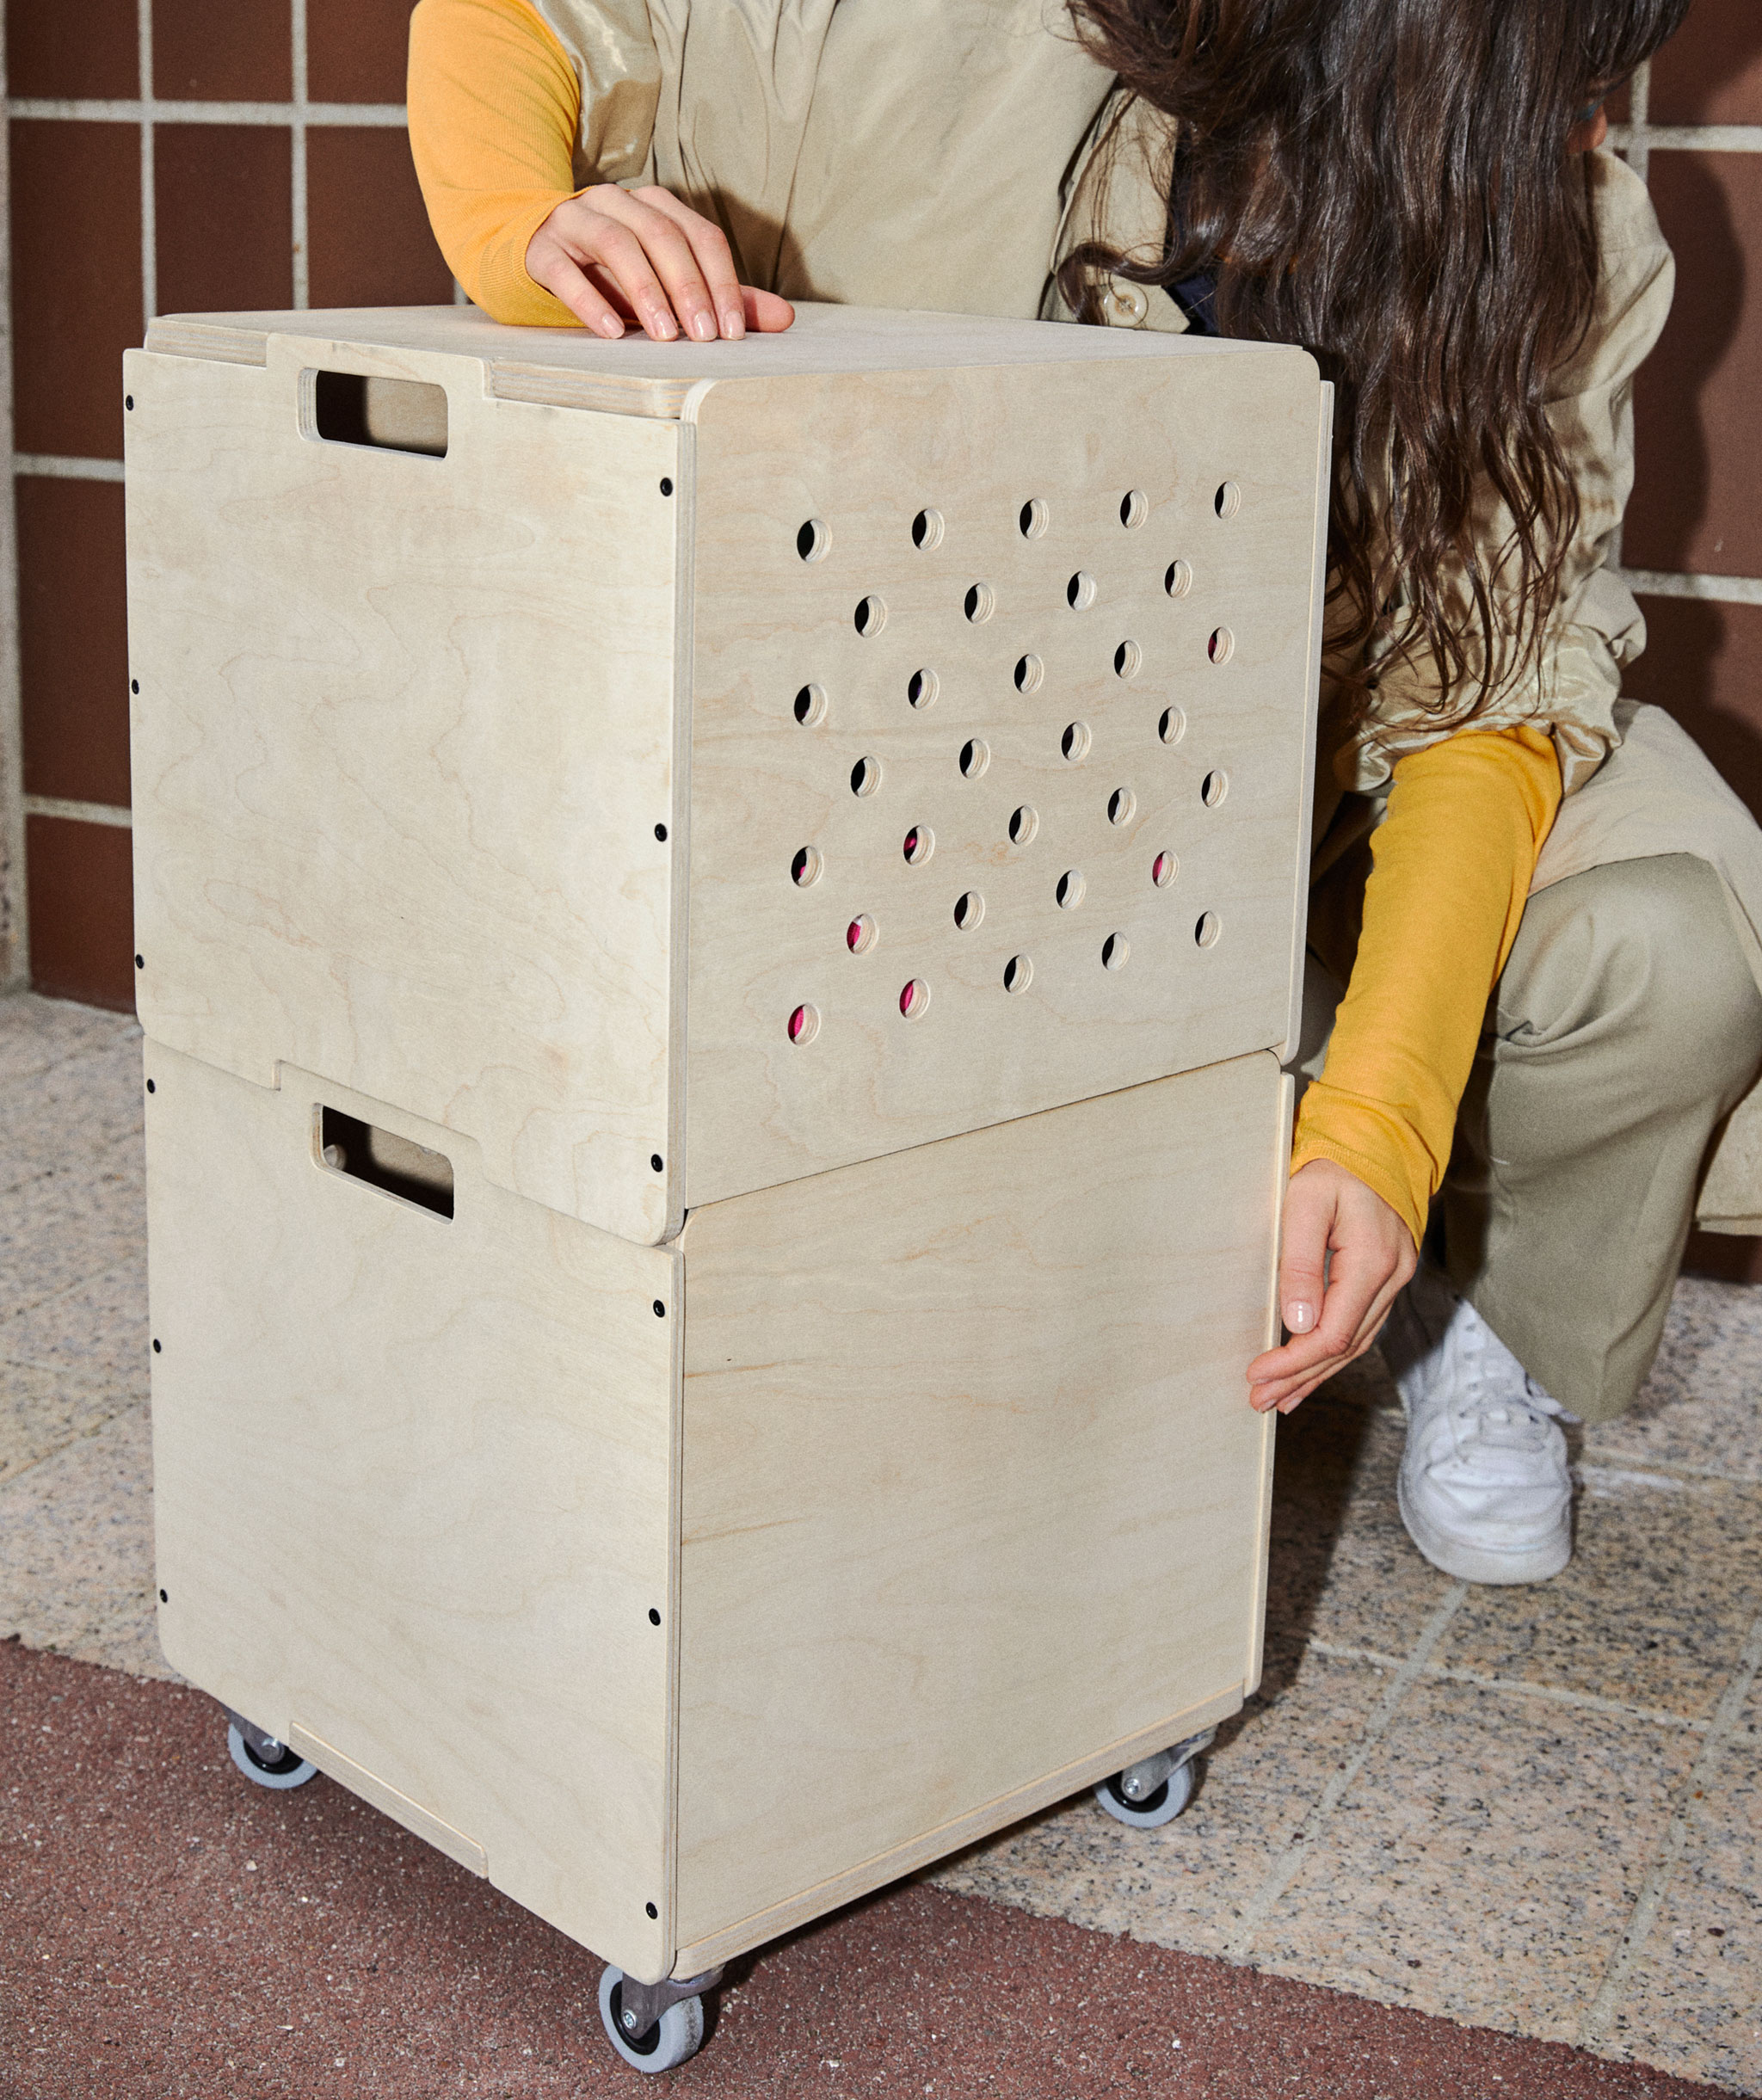 Two cube-shaped storage boxes made out of plywood, stacked on top of each other. The lower box has castors.